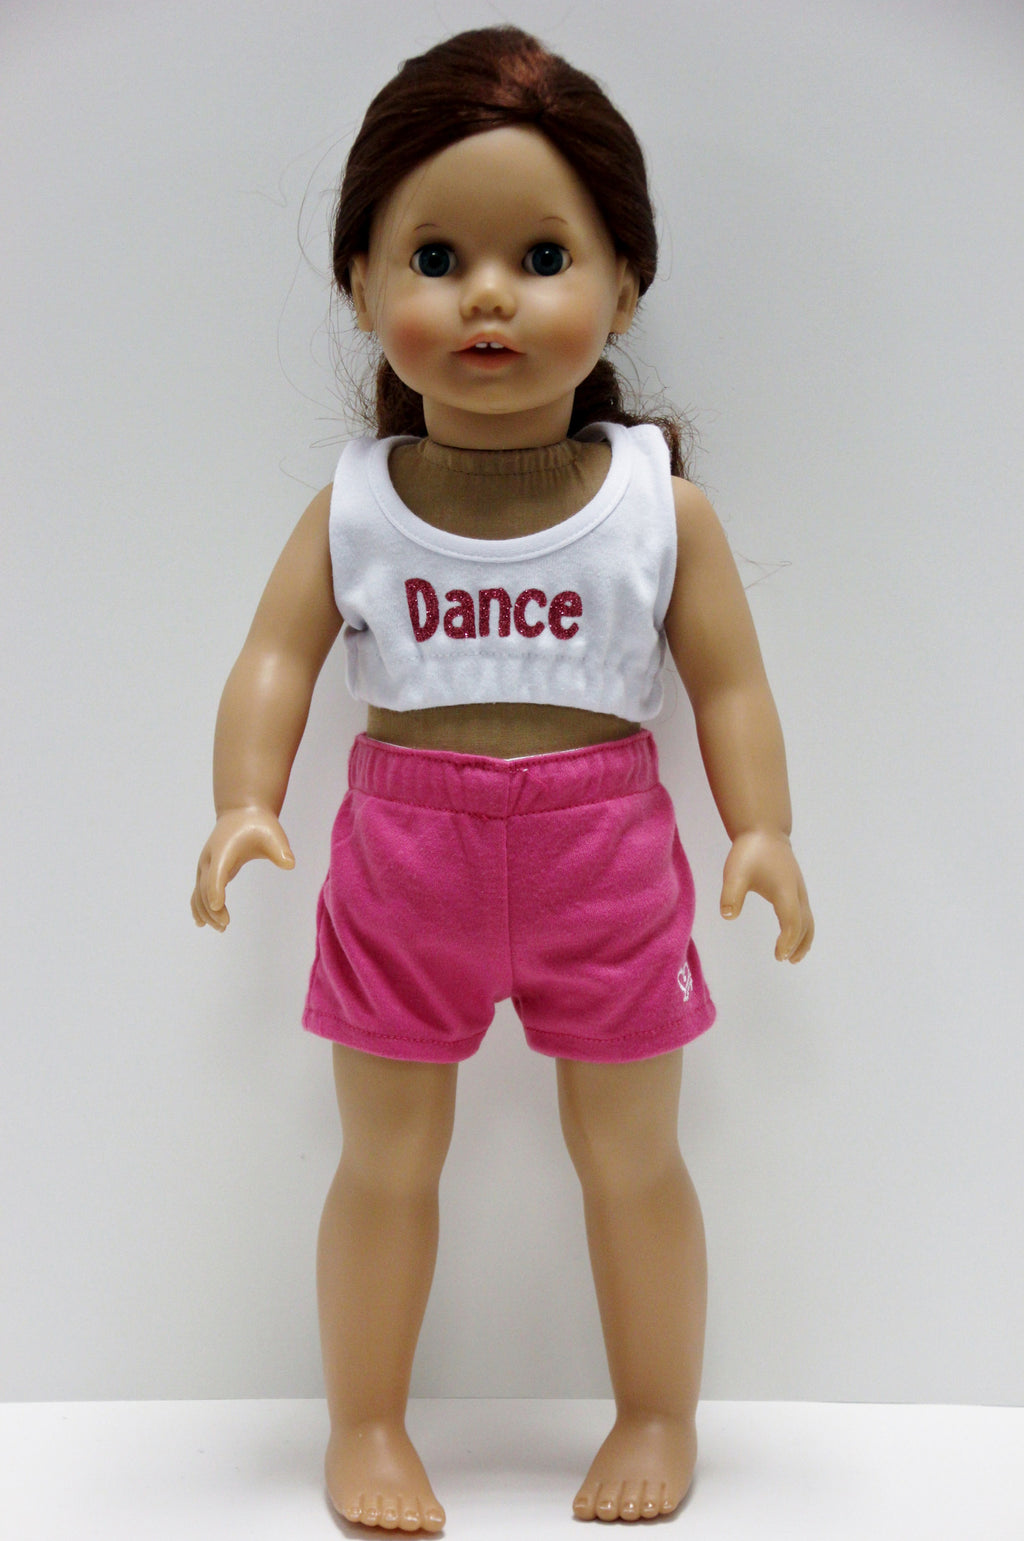 Dance white top/hot pink shorts